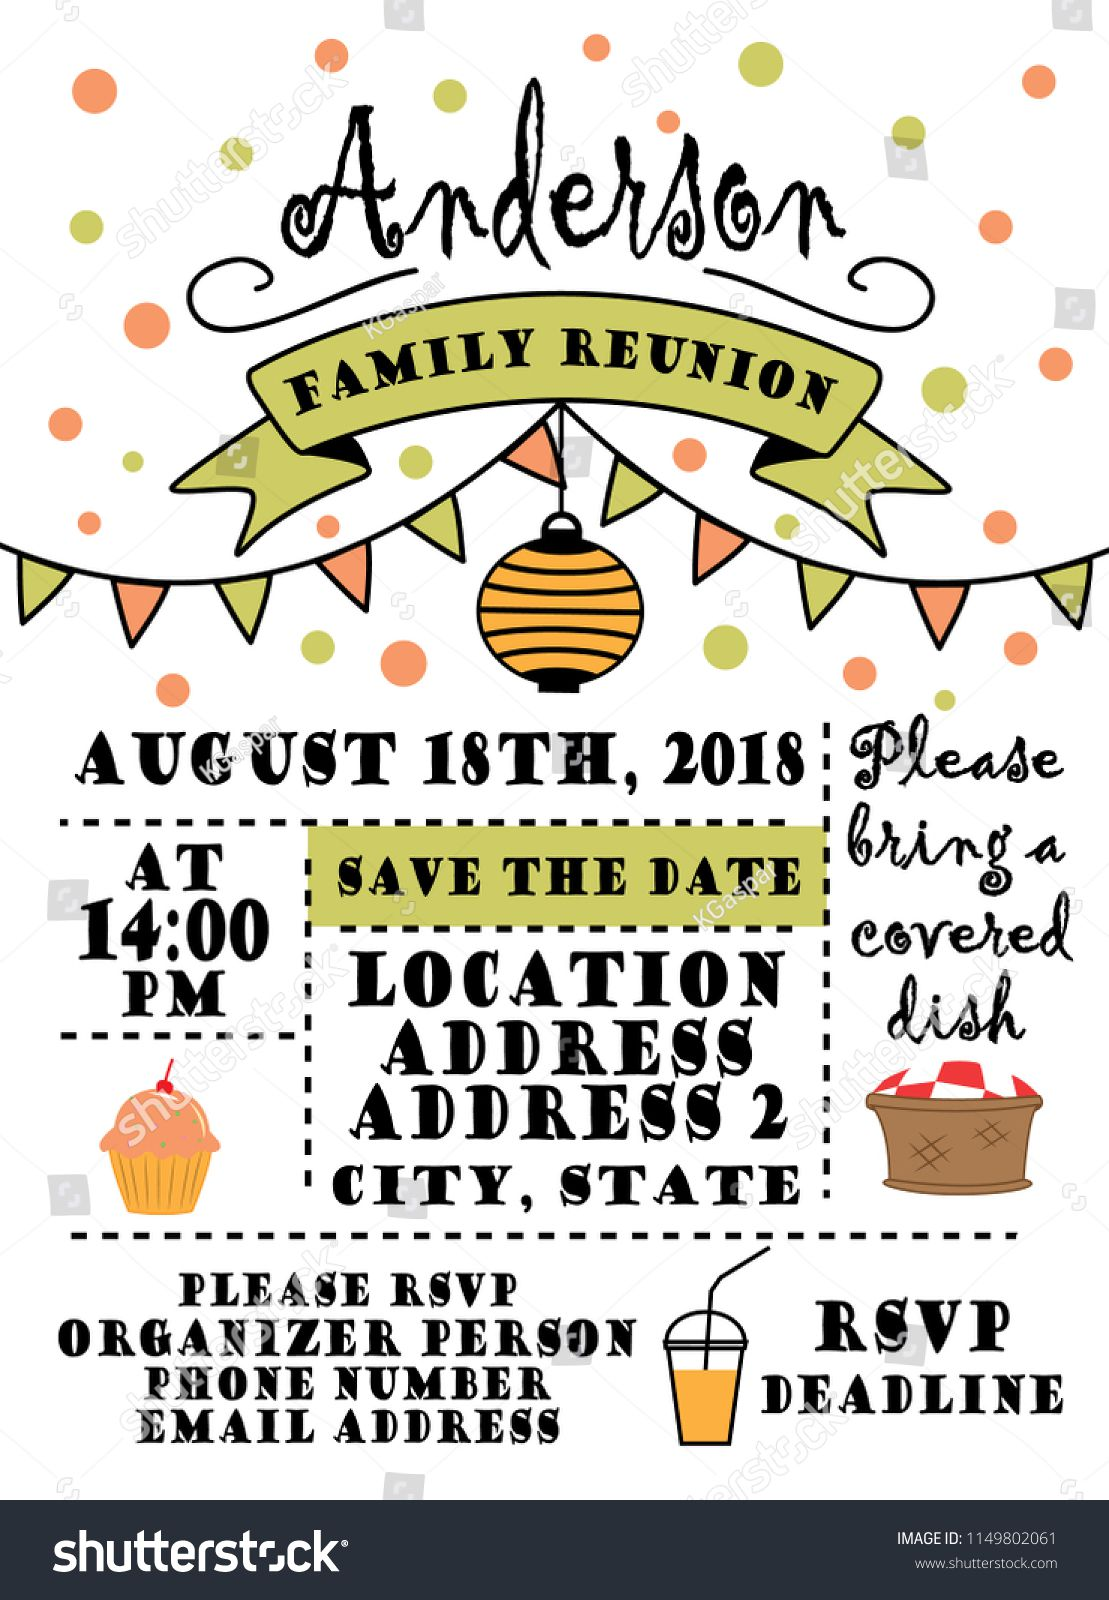 010 Stupendou Family Reunion Invitation Template Free Highest Quality  For Word OnlineFull